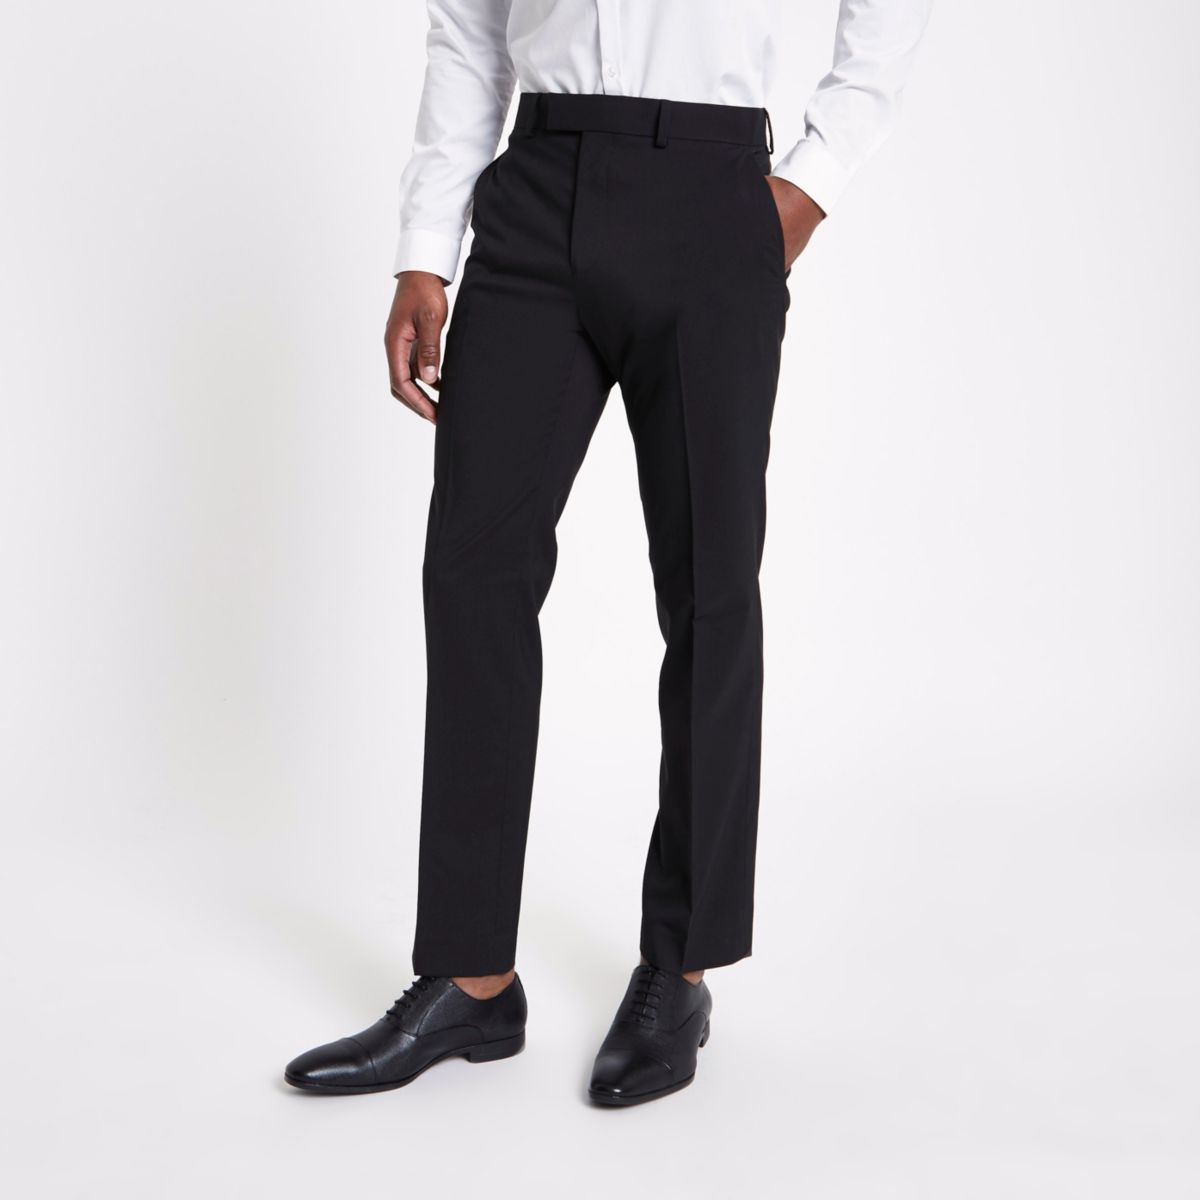 Black tailored fit suit pants